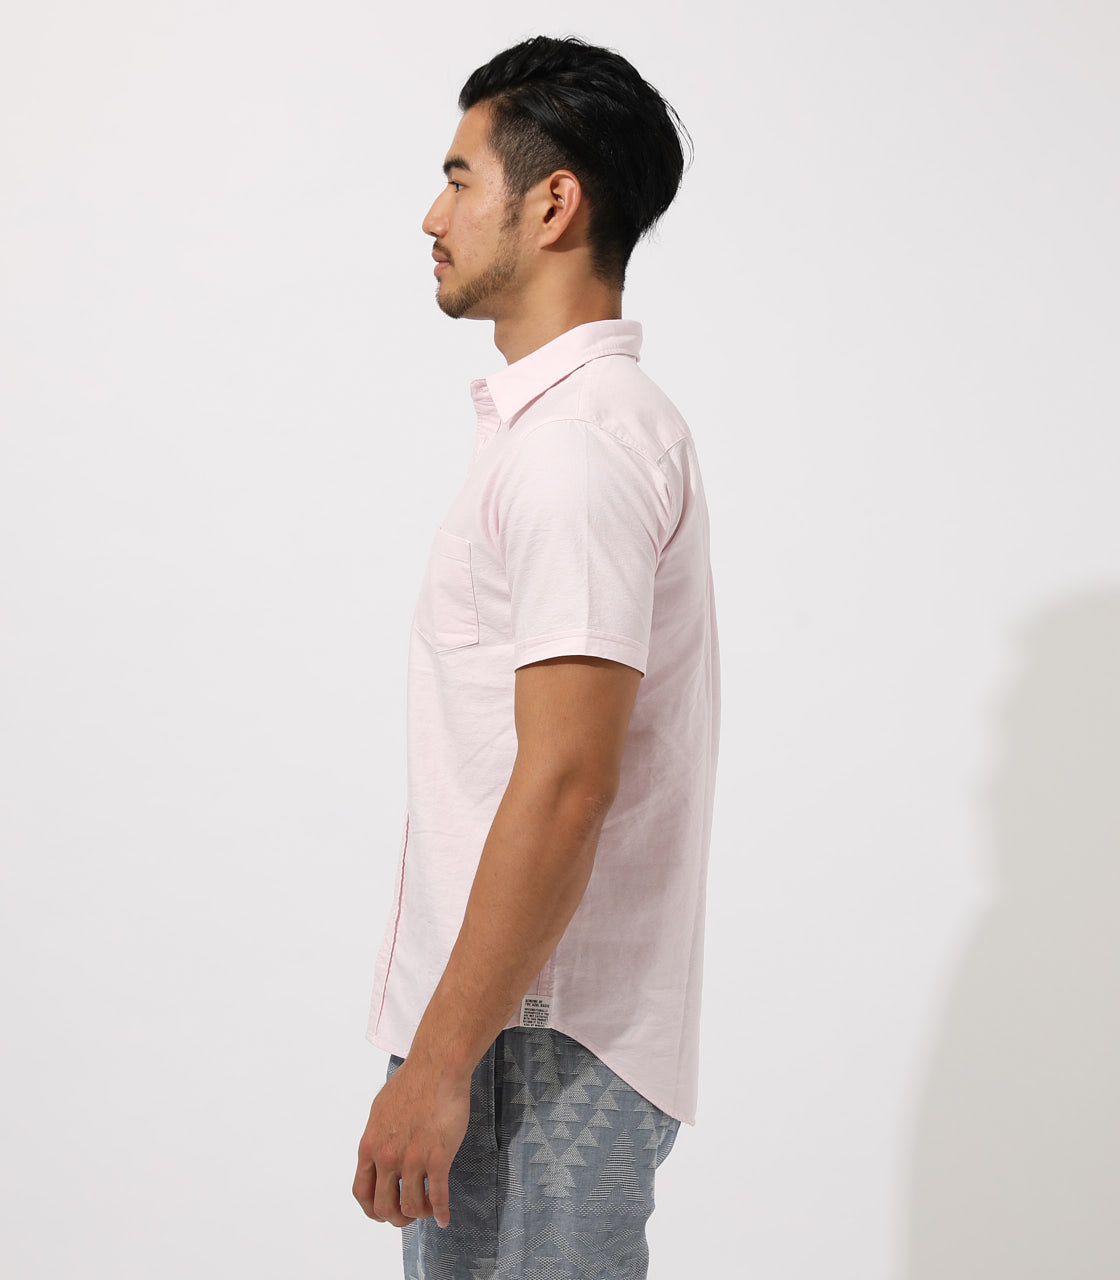 OXFORDS/SSHIRT 詳細画像 L/PNK 5